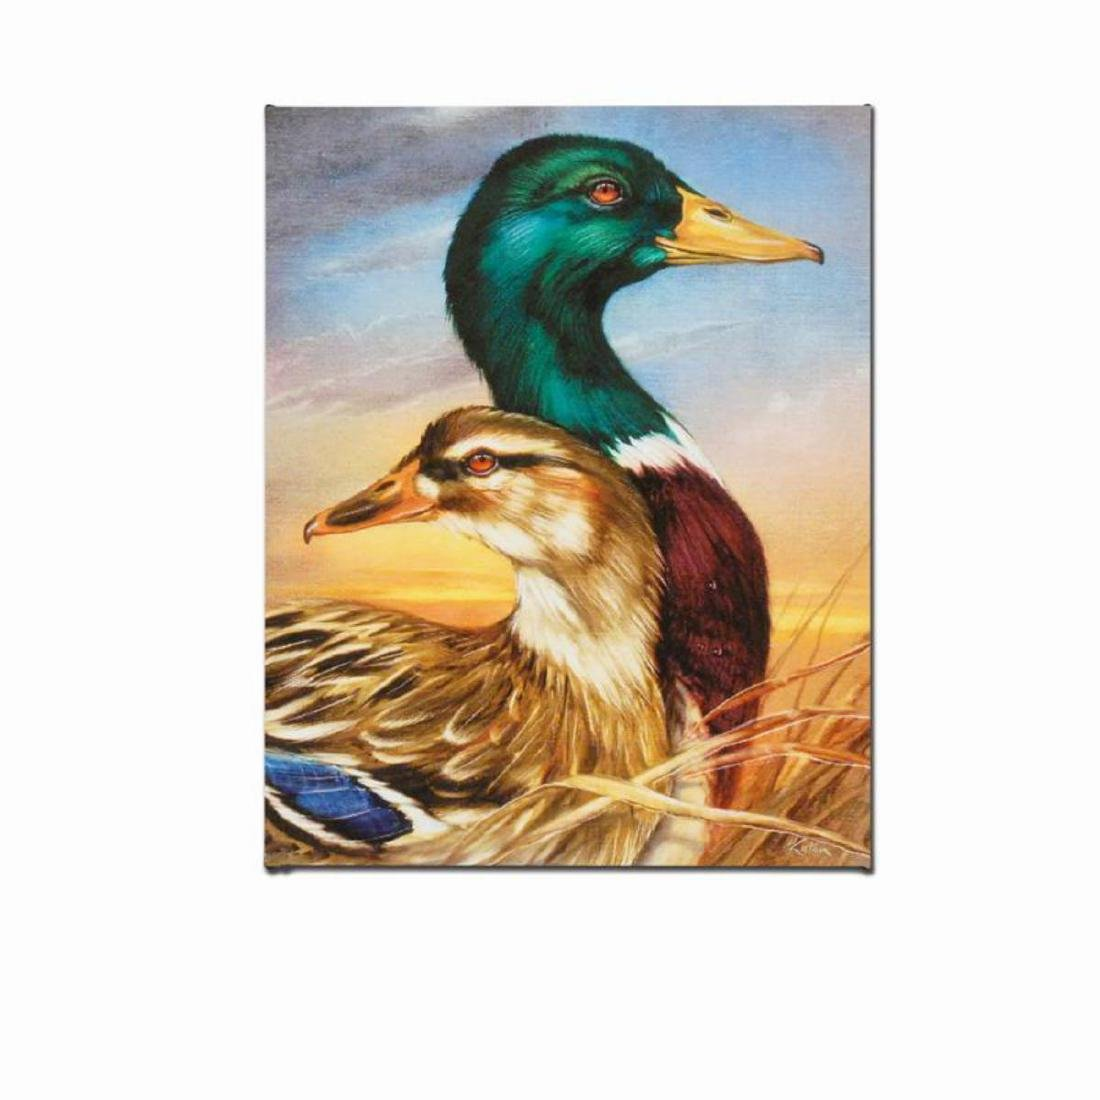 """Mallard"" Limited Edition Giclee on Canvas by Martin"